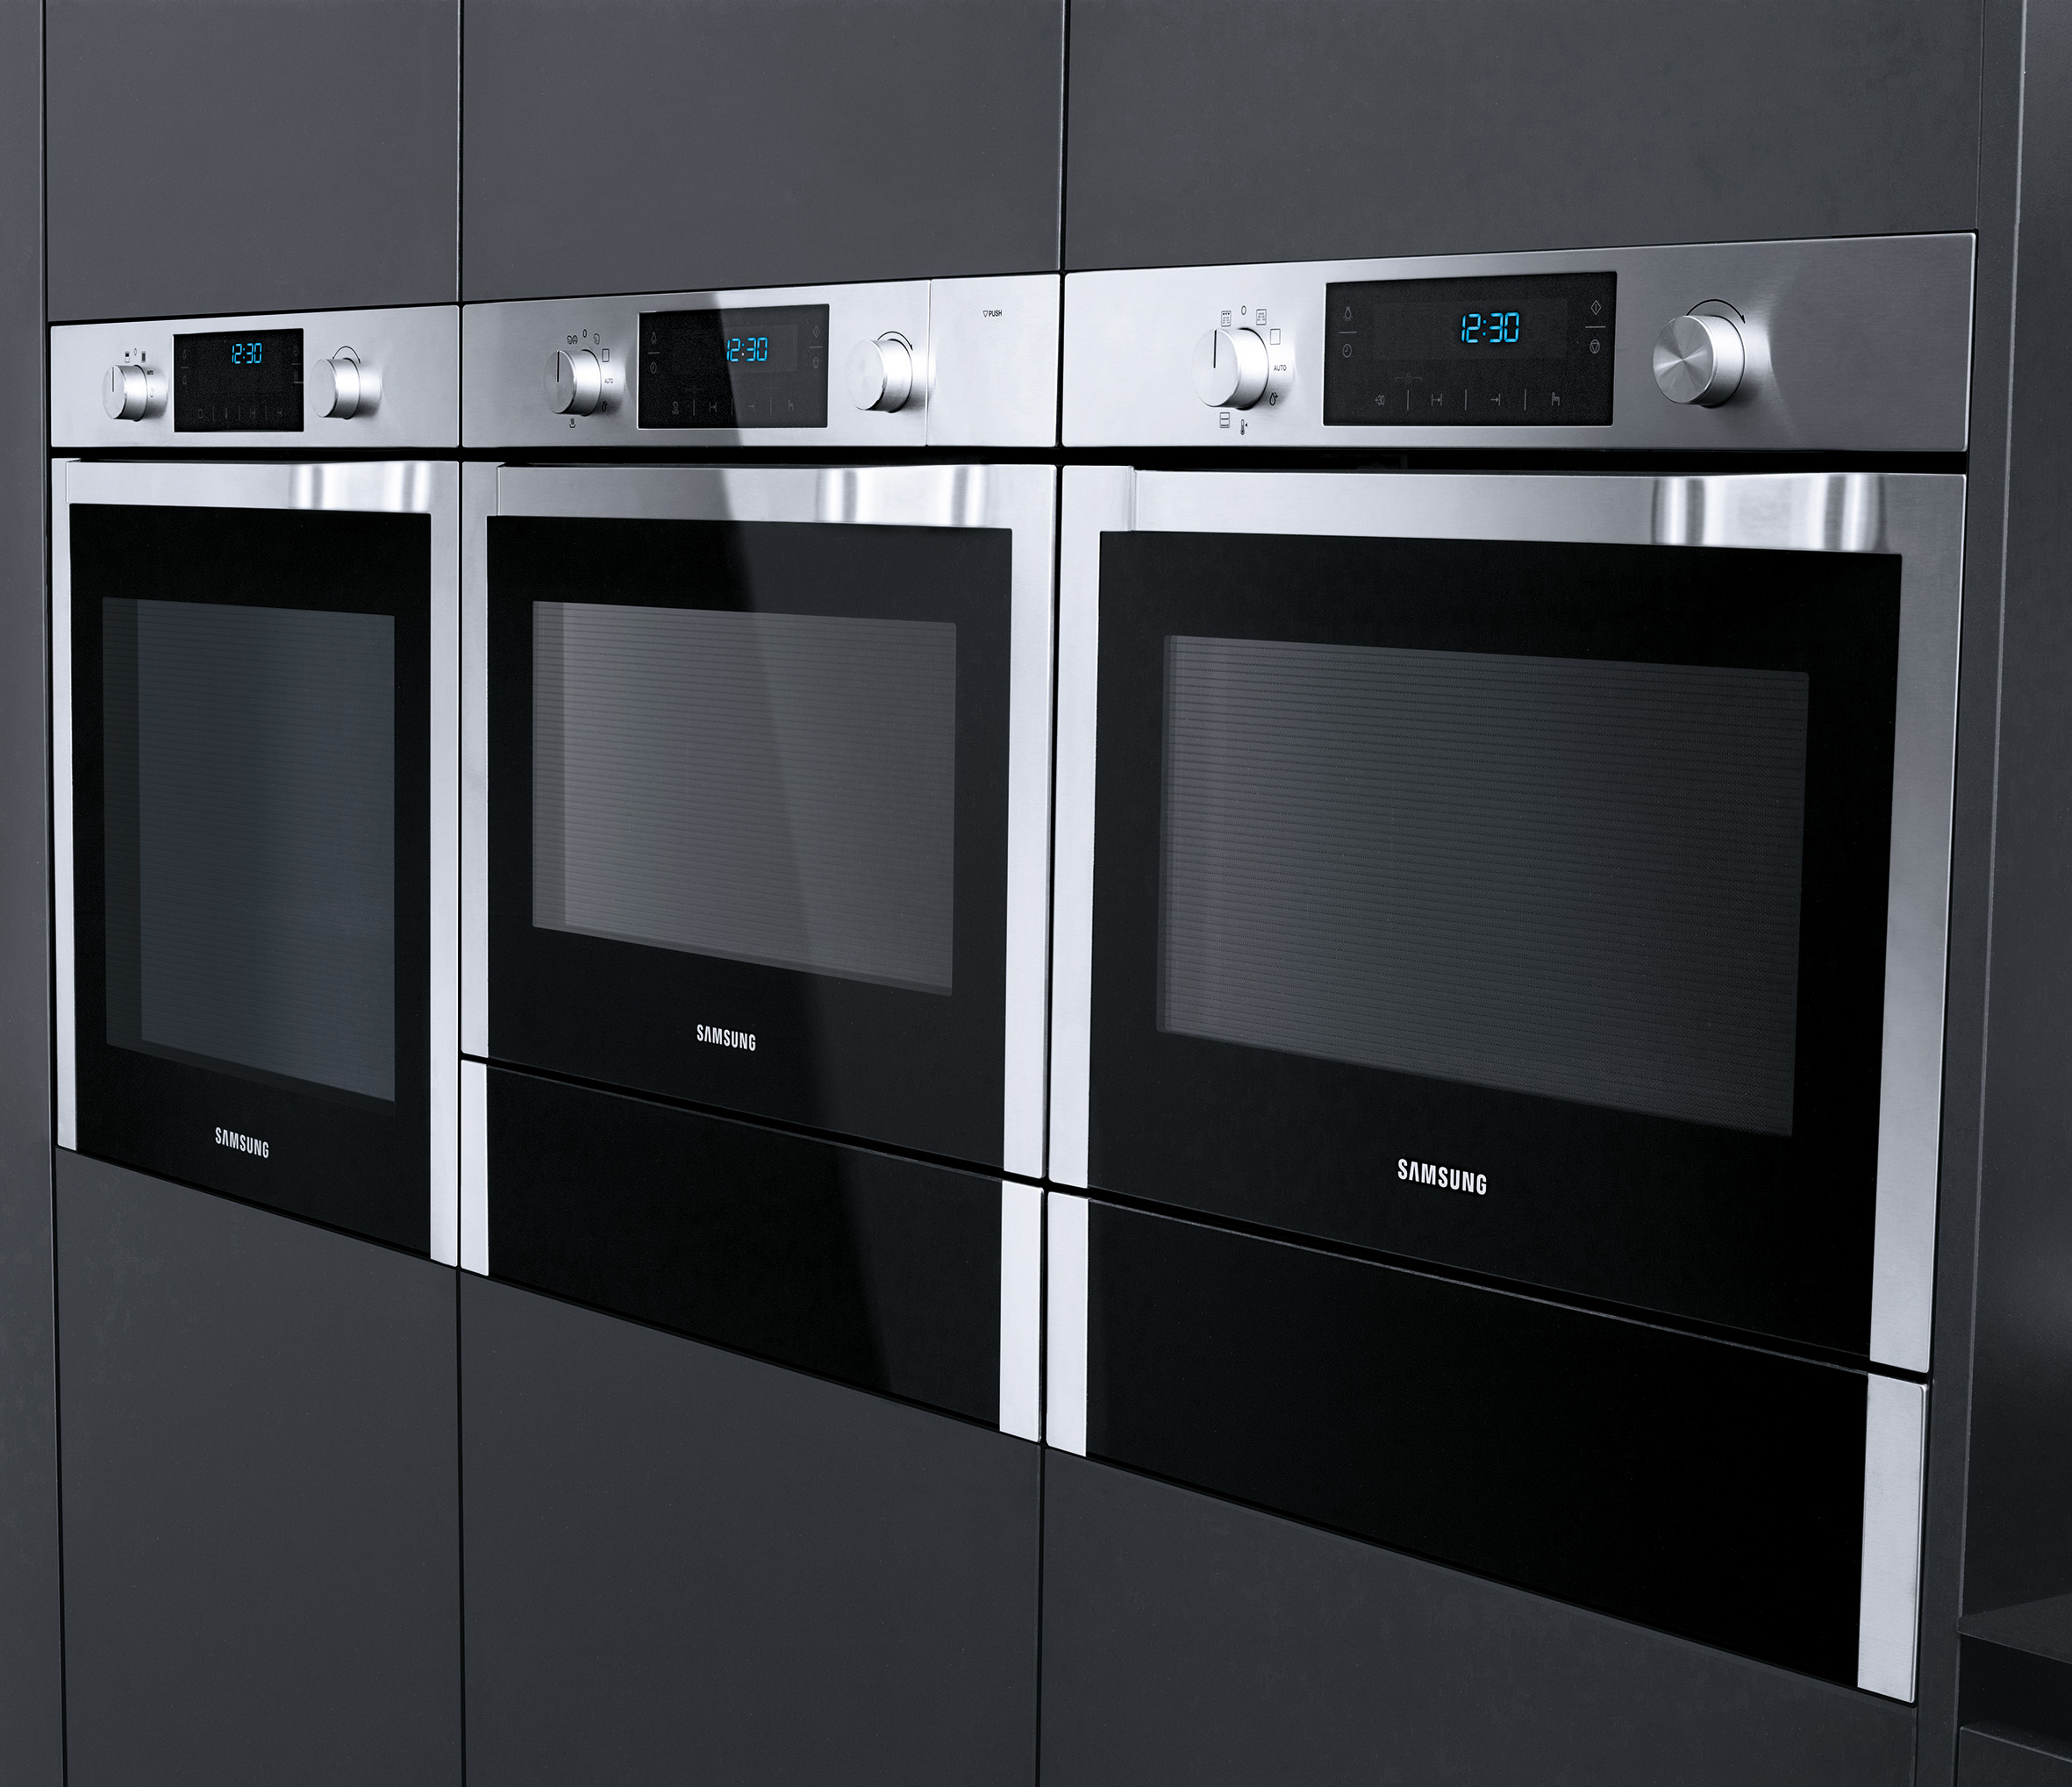 samsung nv70f7796es backofen einbau samsung nv70f7786es backofen twin cookingtm energie und. Black Bedroom Furniture Sets. Home Design Ideas